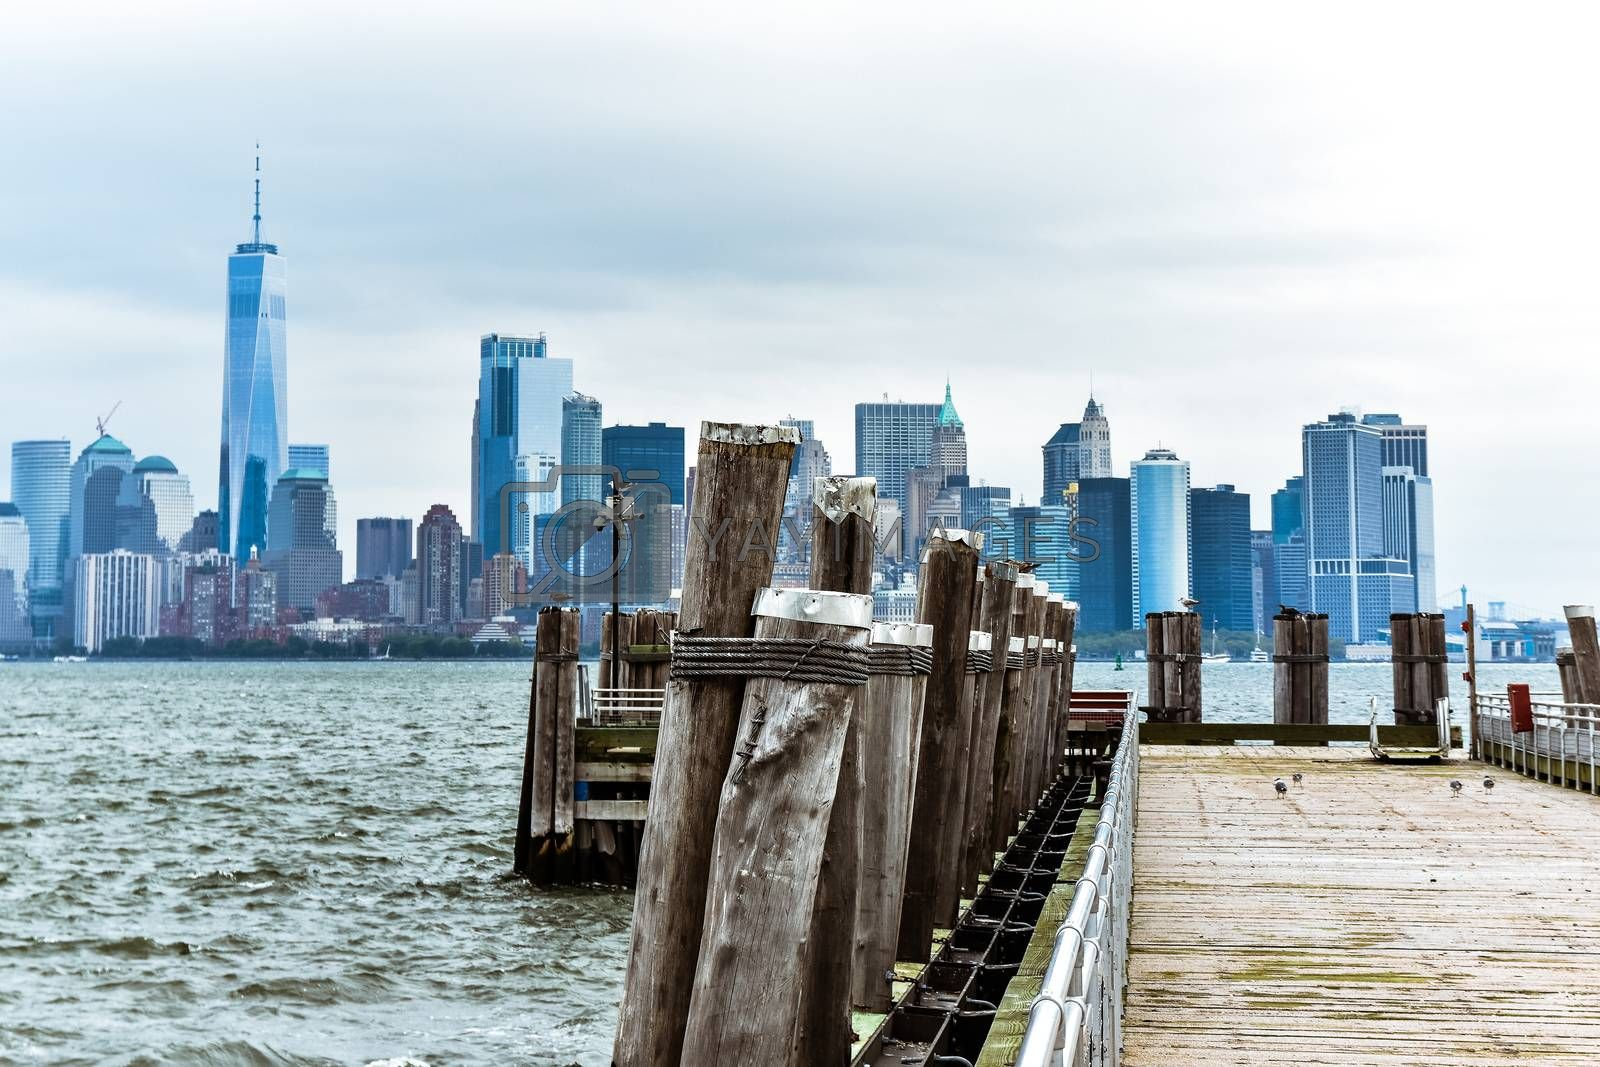 Cityscape of the financial district of Manhattan from Liberty Island, in a foggy day.